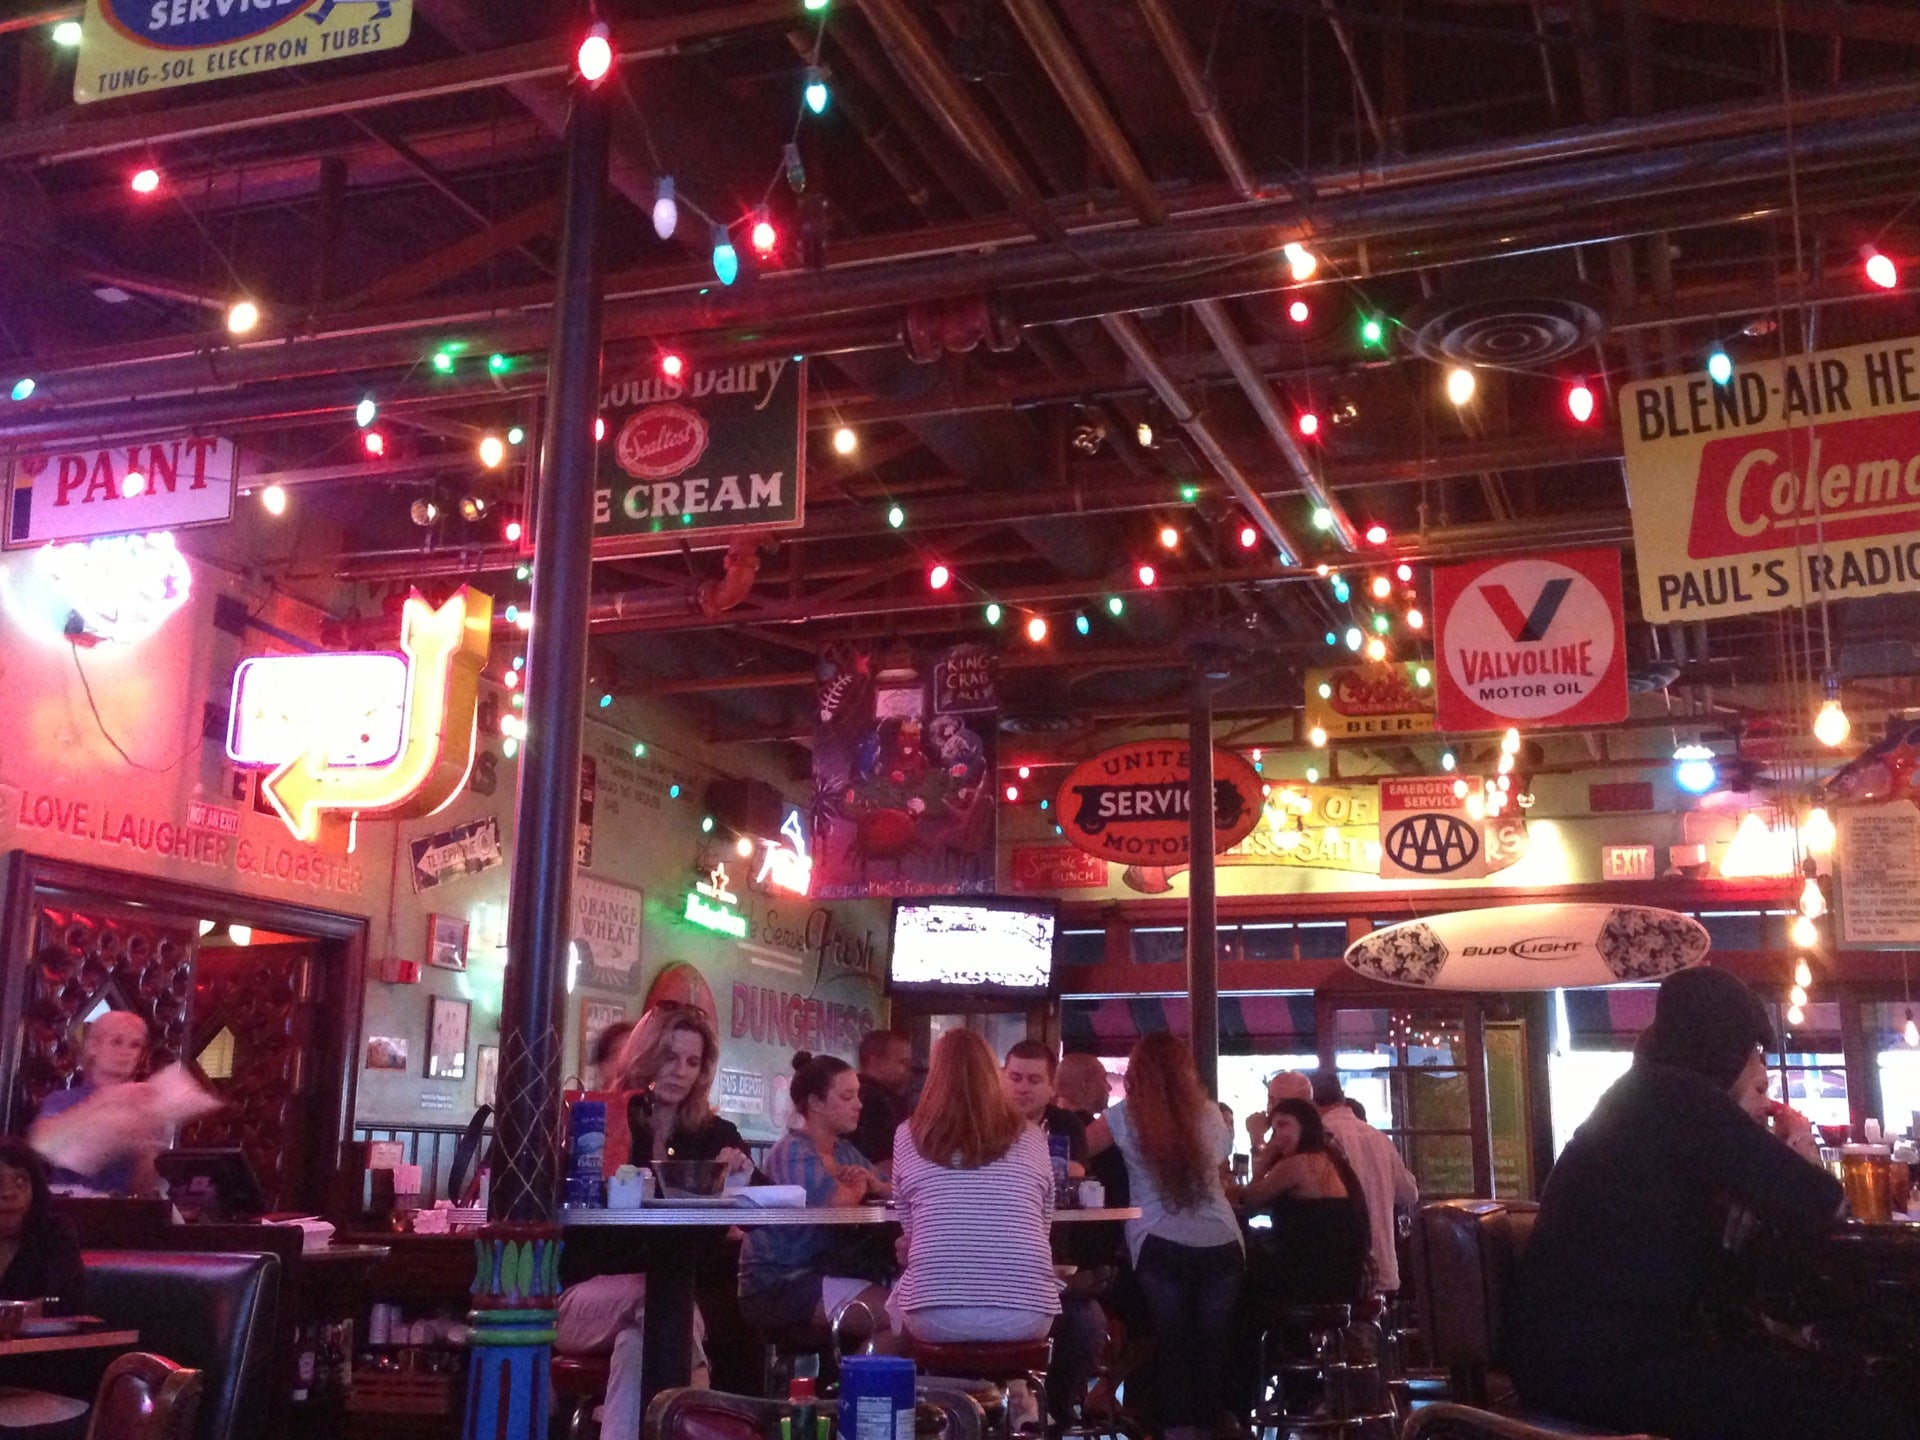 King 39 s fish house at 100 w broadway pine ave long beach ca for King fish long beach